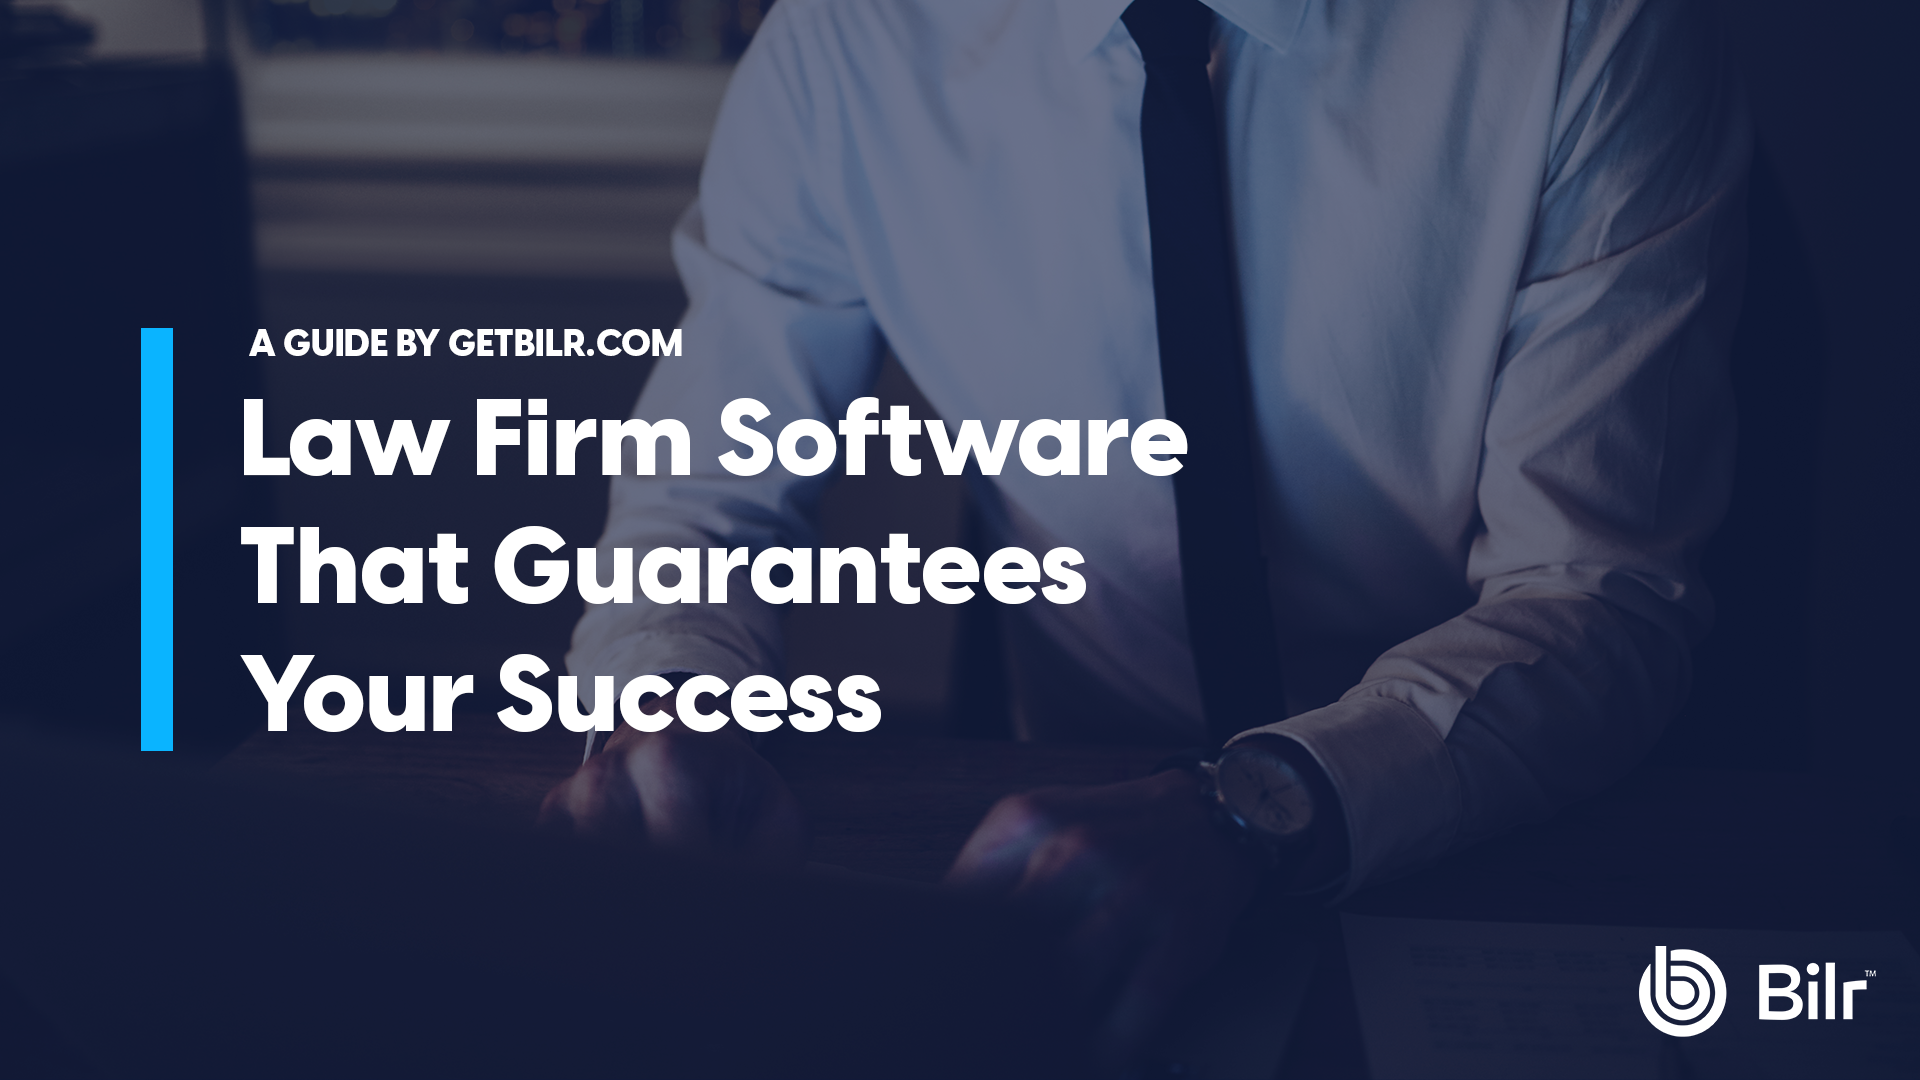 Law Firm Software You Need to Guarantee Success